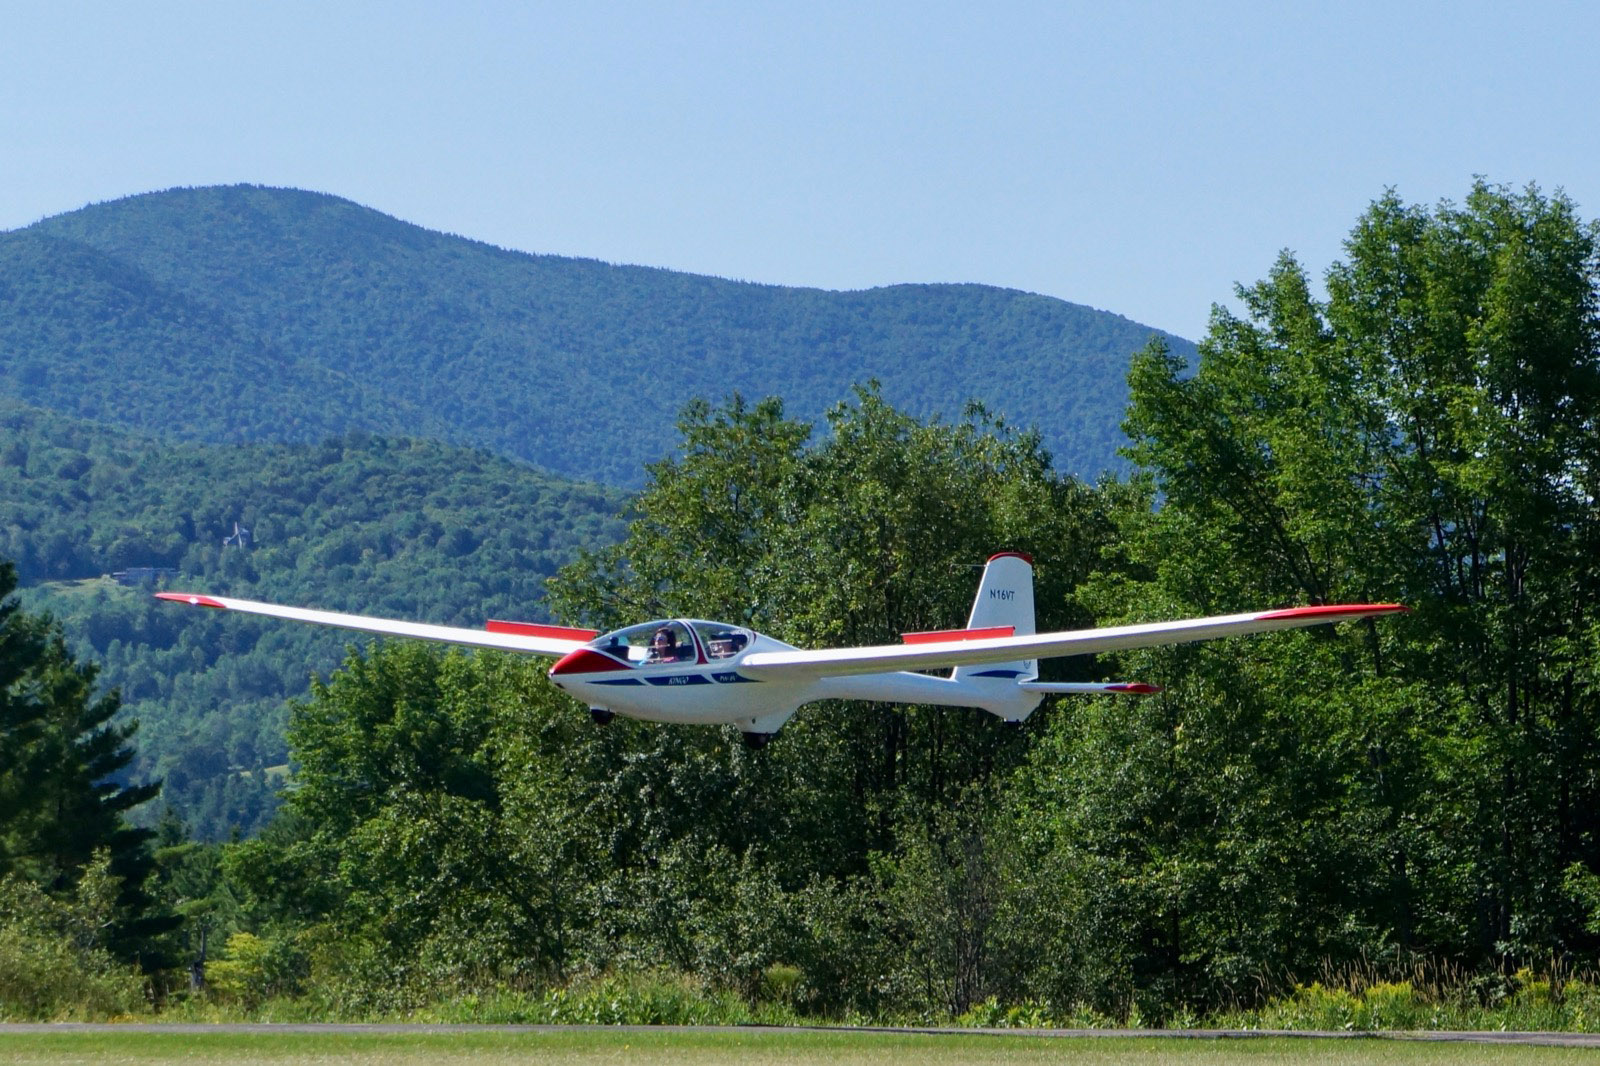 Sixteen-year-old Lauren Tulis is at the controls for a landing during a youth sailplane camp Vermont. She said glider flying required a sensitive touch and constant awareness of your surroundings. Photo courtesy of Tom Anderson.